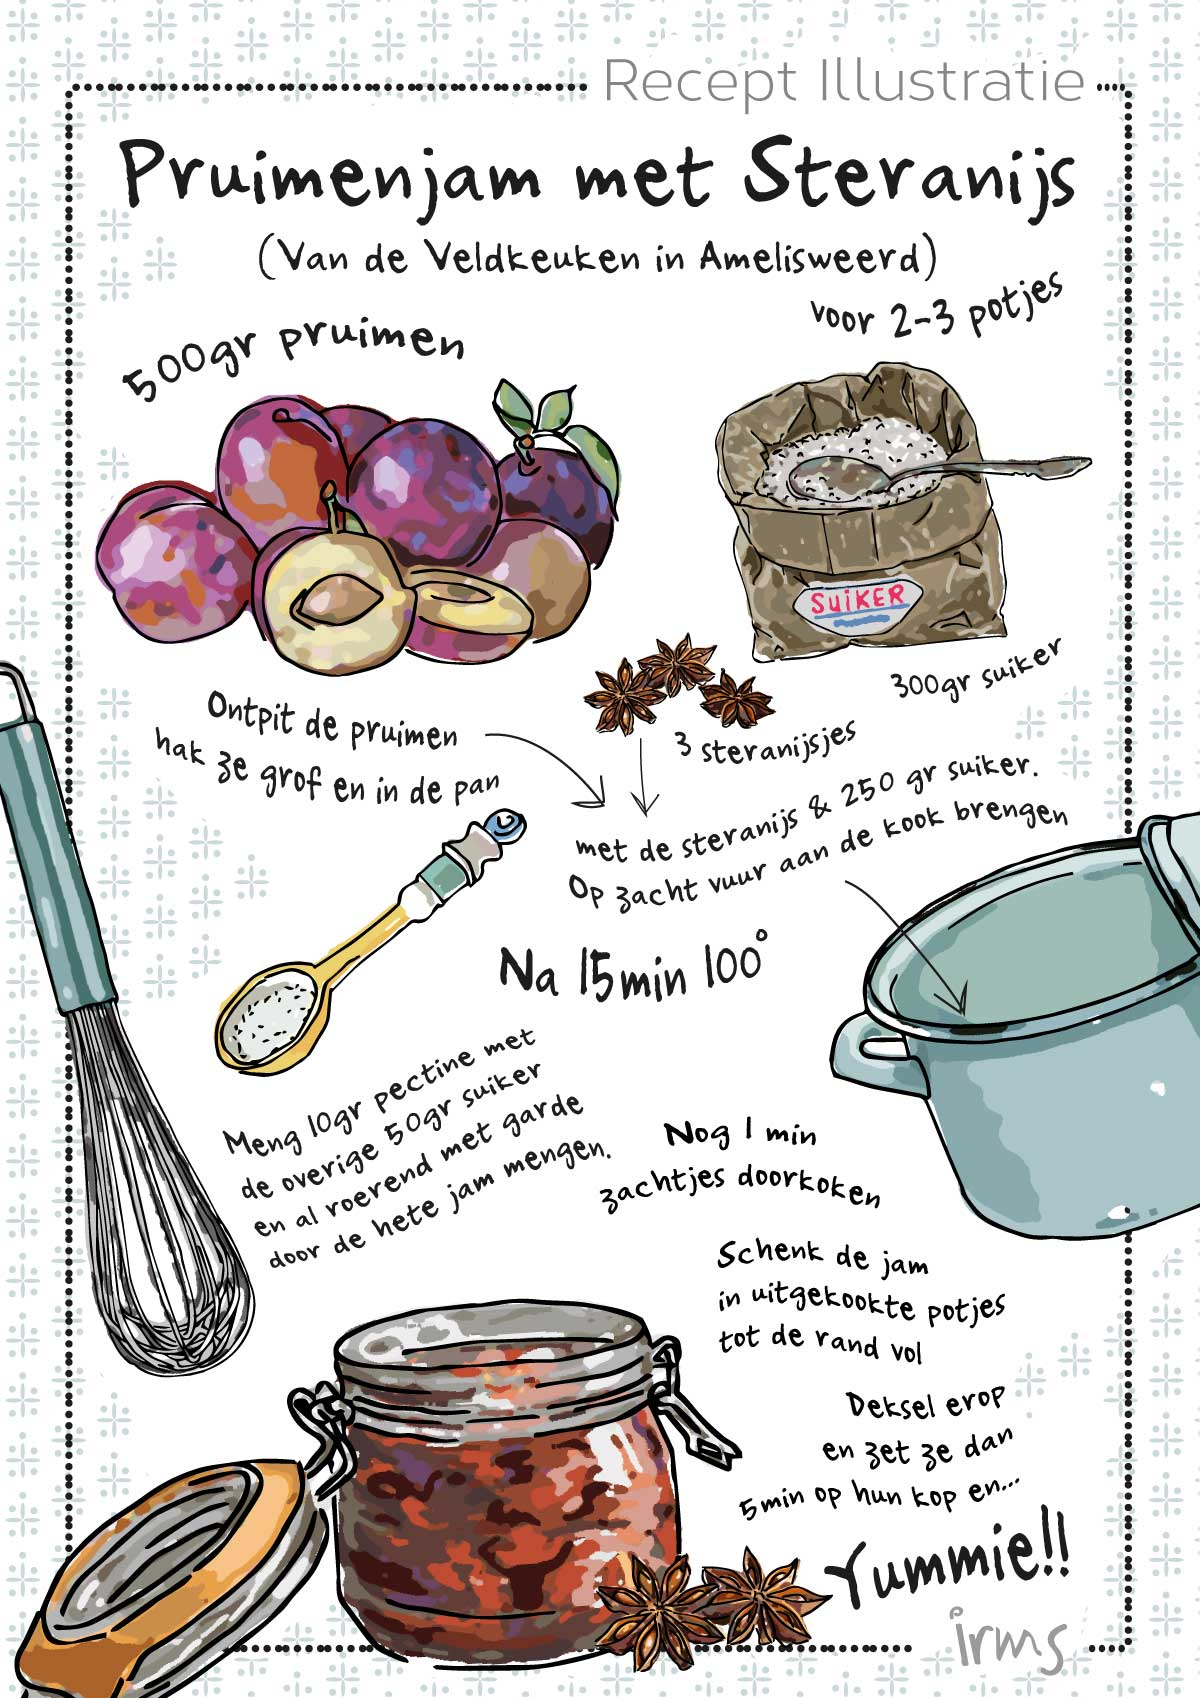 pruimenjam-recept-illustratie